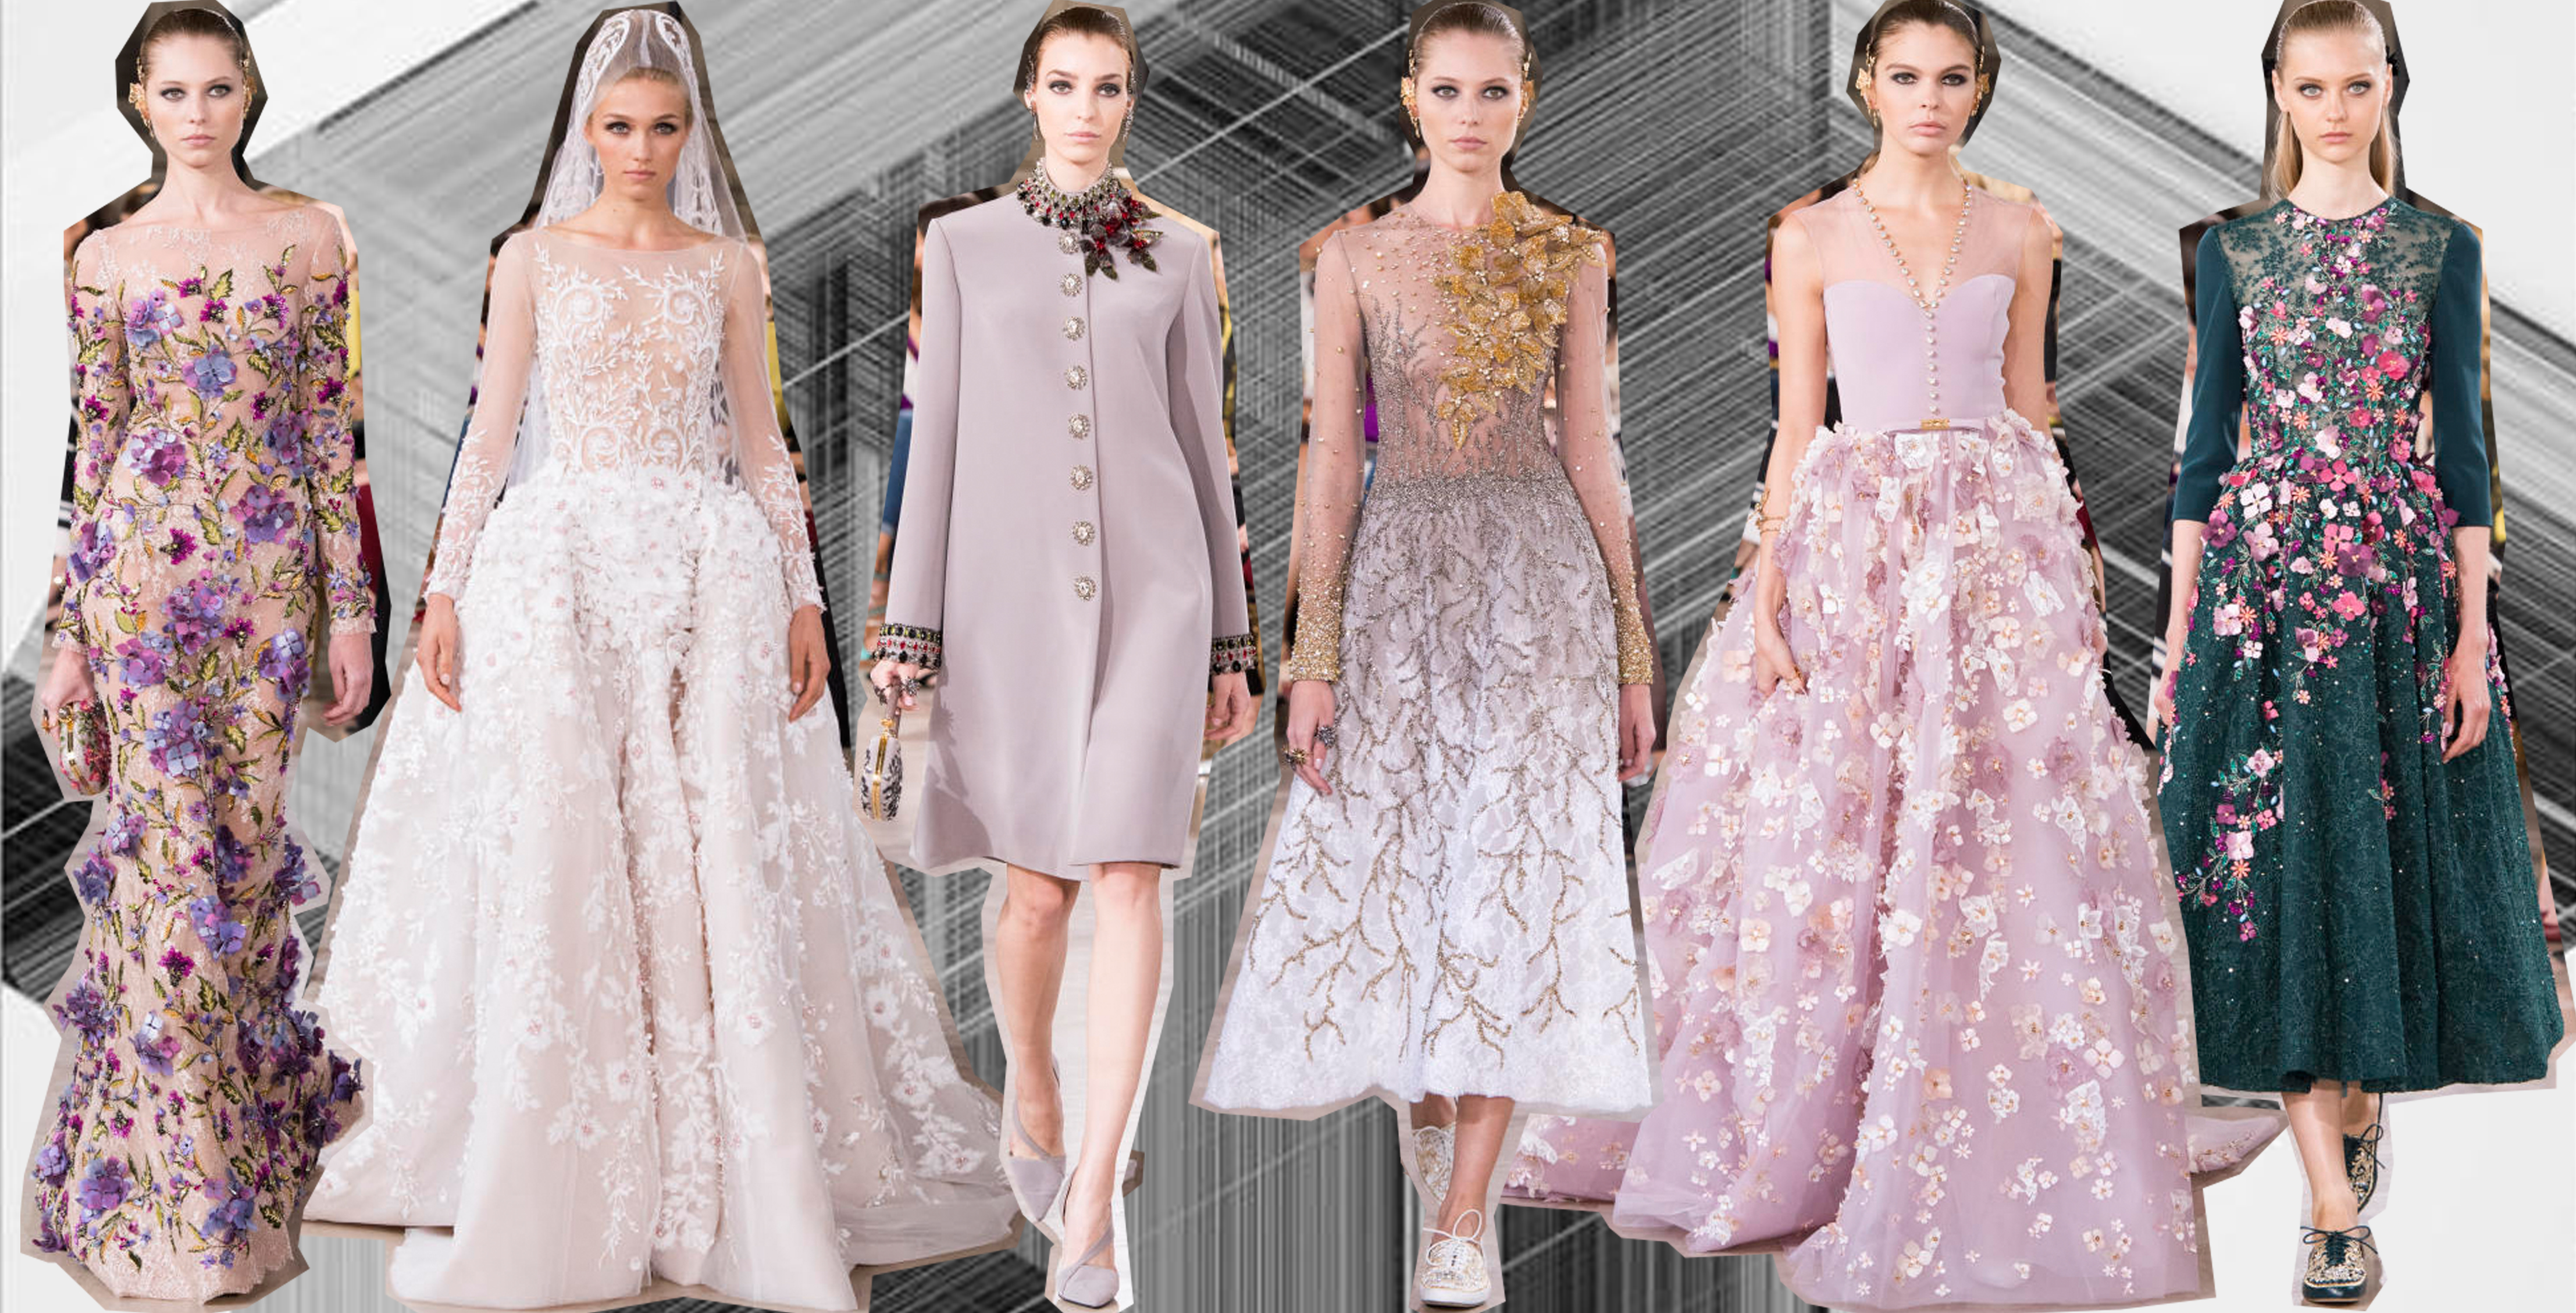 Universidad_Jannette_Klein_BlogJK_TOP_15_BEST_COUTURE_COLLECTIONS_FALL_2016_George_Hobeika